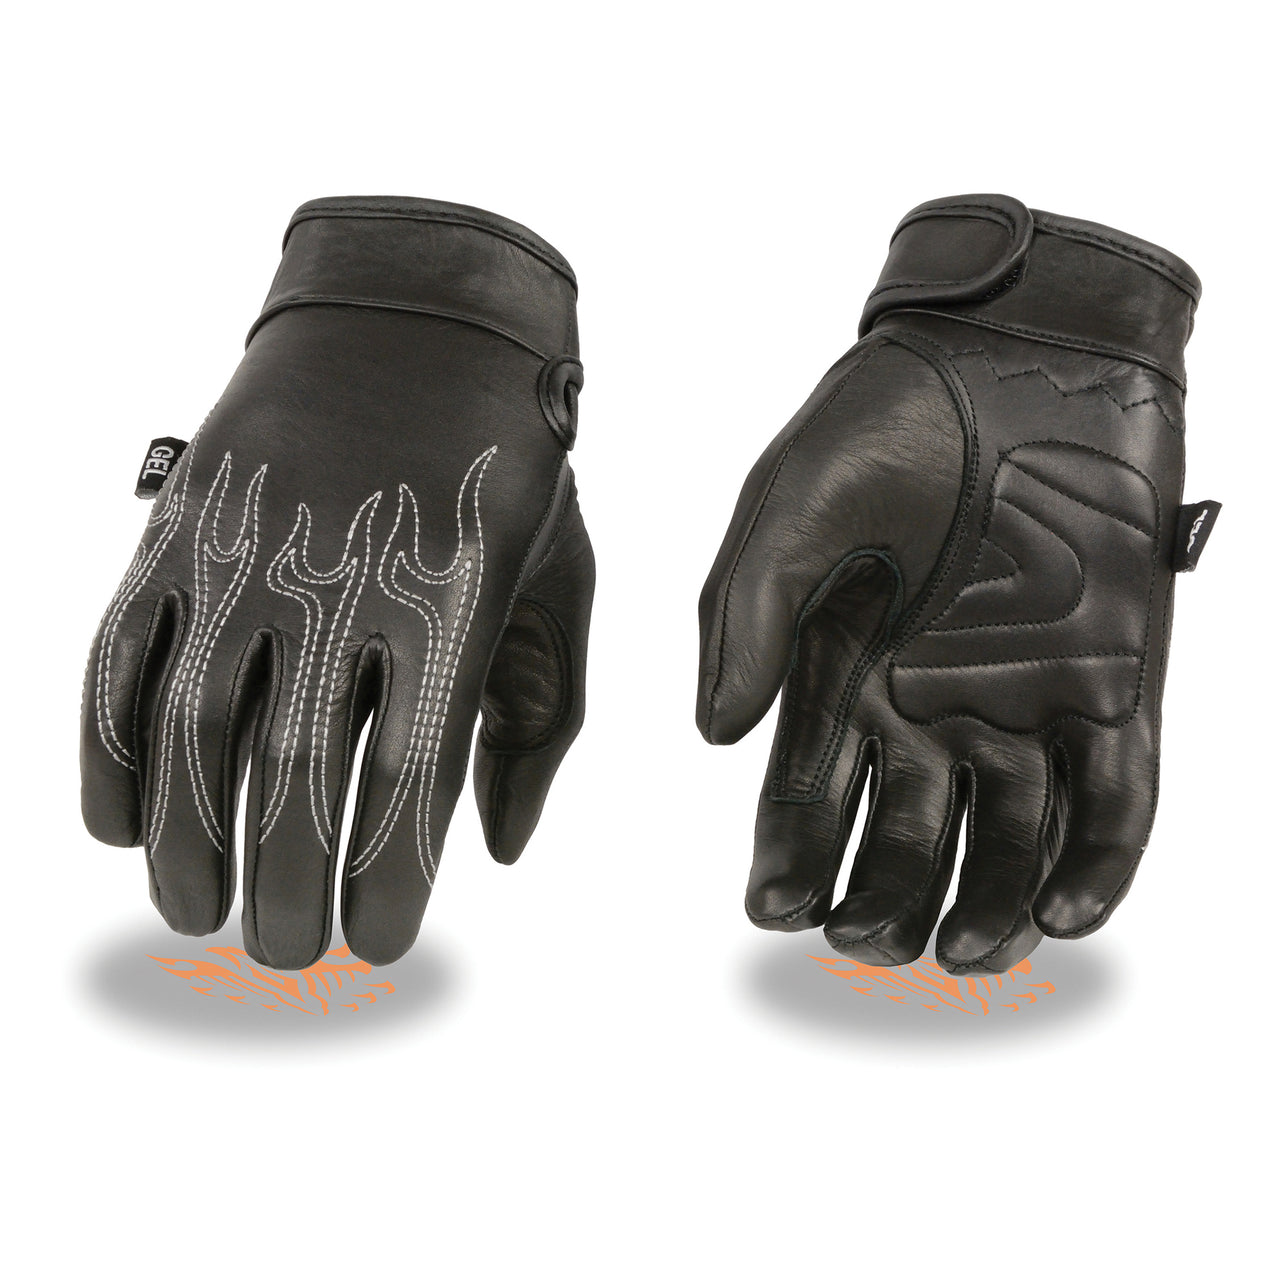 Men's Leather Crusing Gloves w/ Flame Embroidery, Gel Palm - HighwayLeather